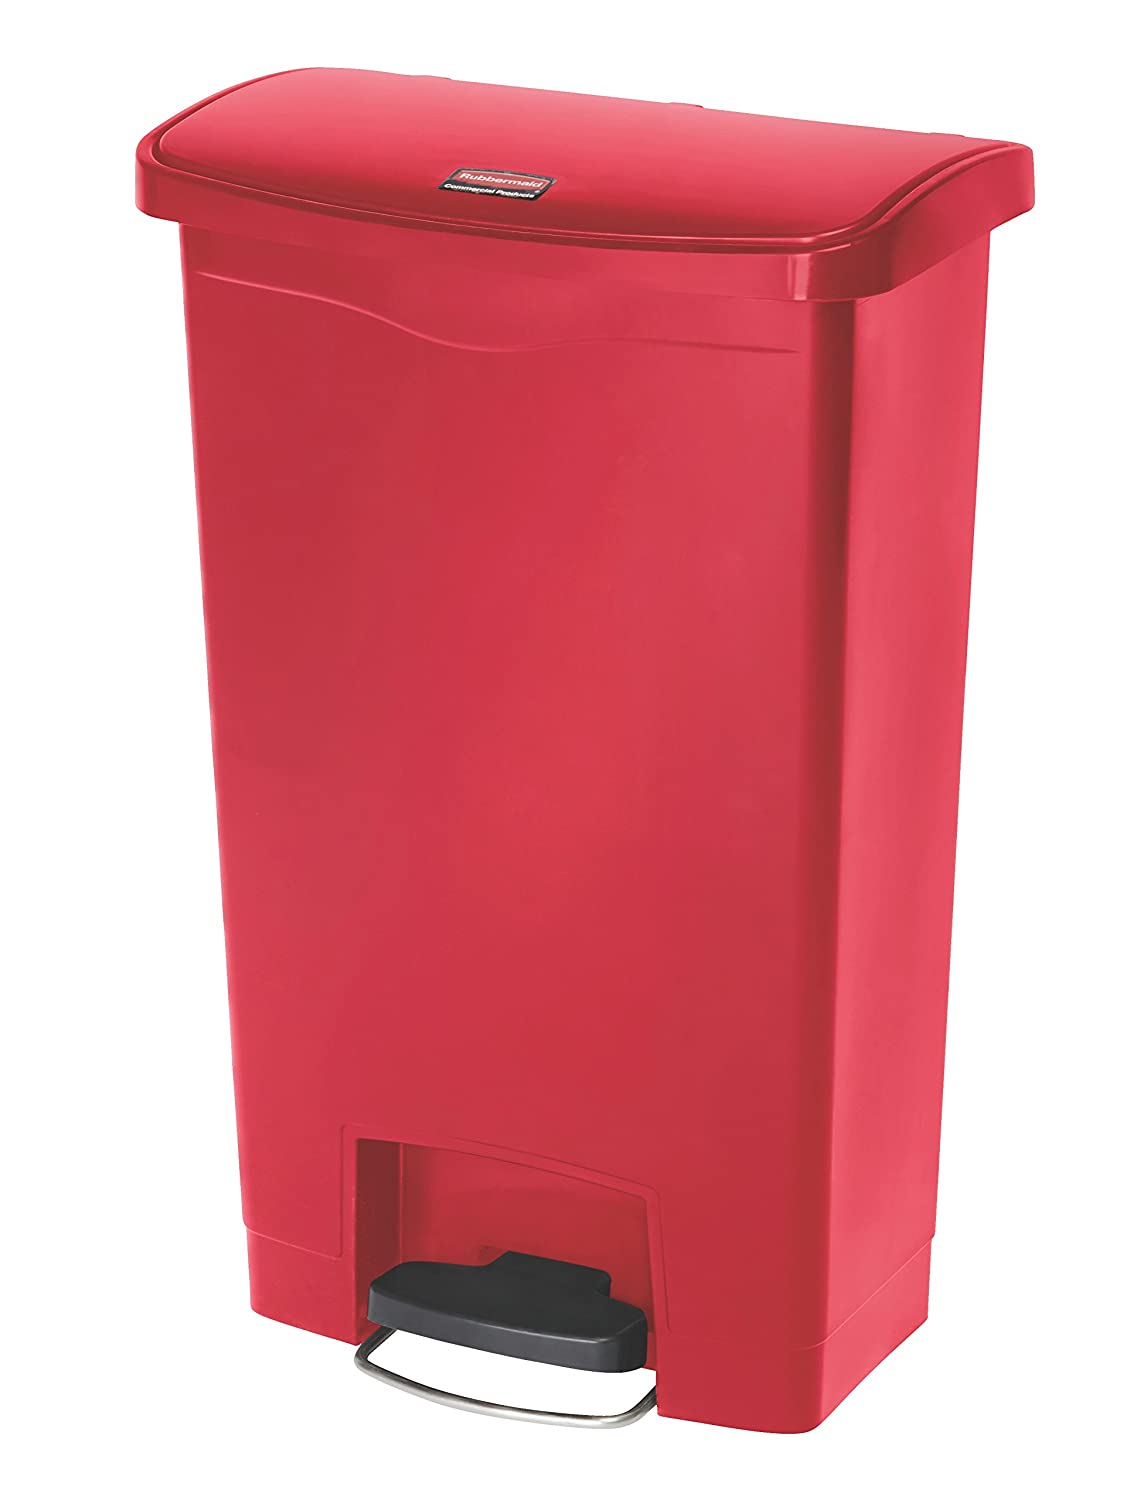 Rubbermaid Commercial Products - 1883566 Slim Jim Step-On Plastic Trash/Garbage Cans, 13 Gallon, Plastic Front Step Step-On, Red